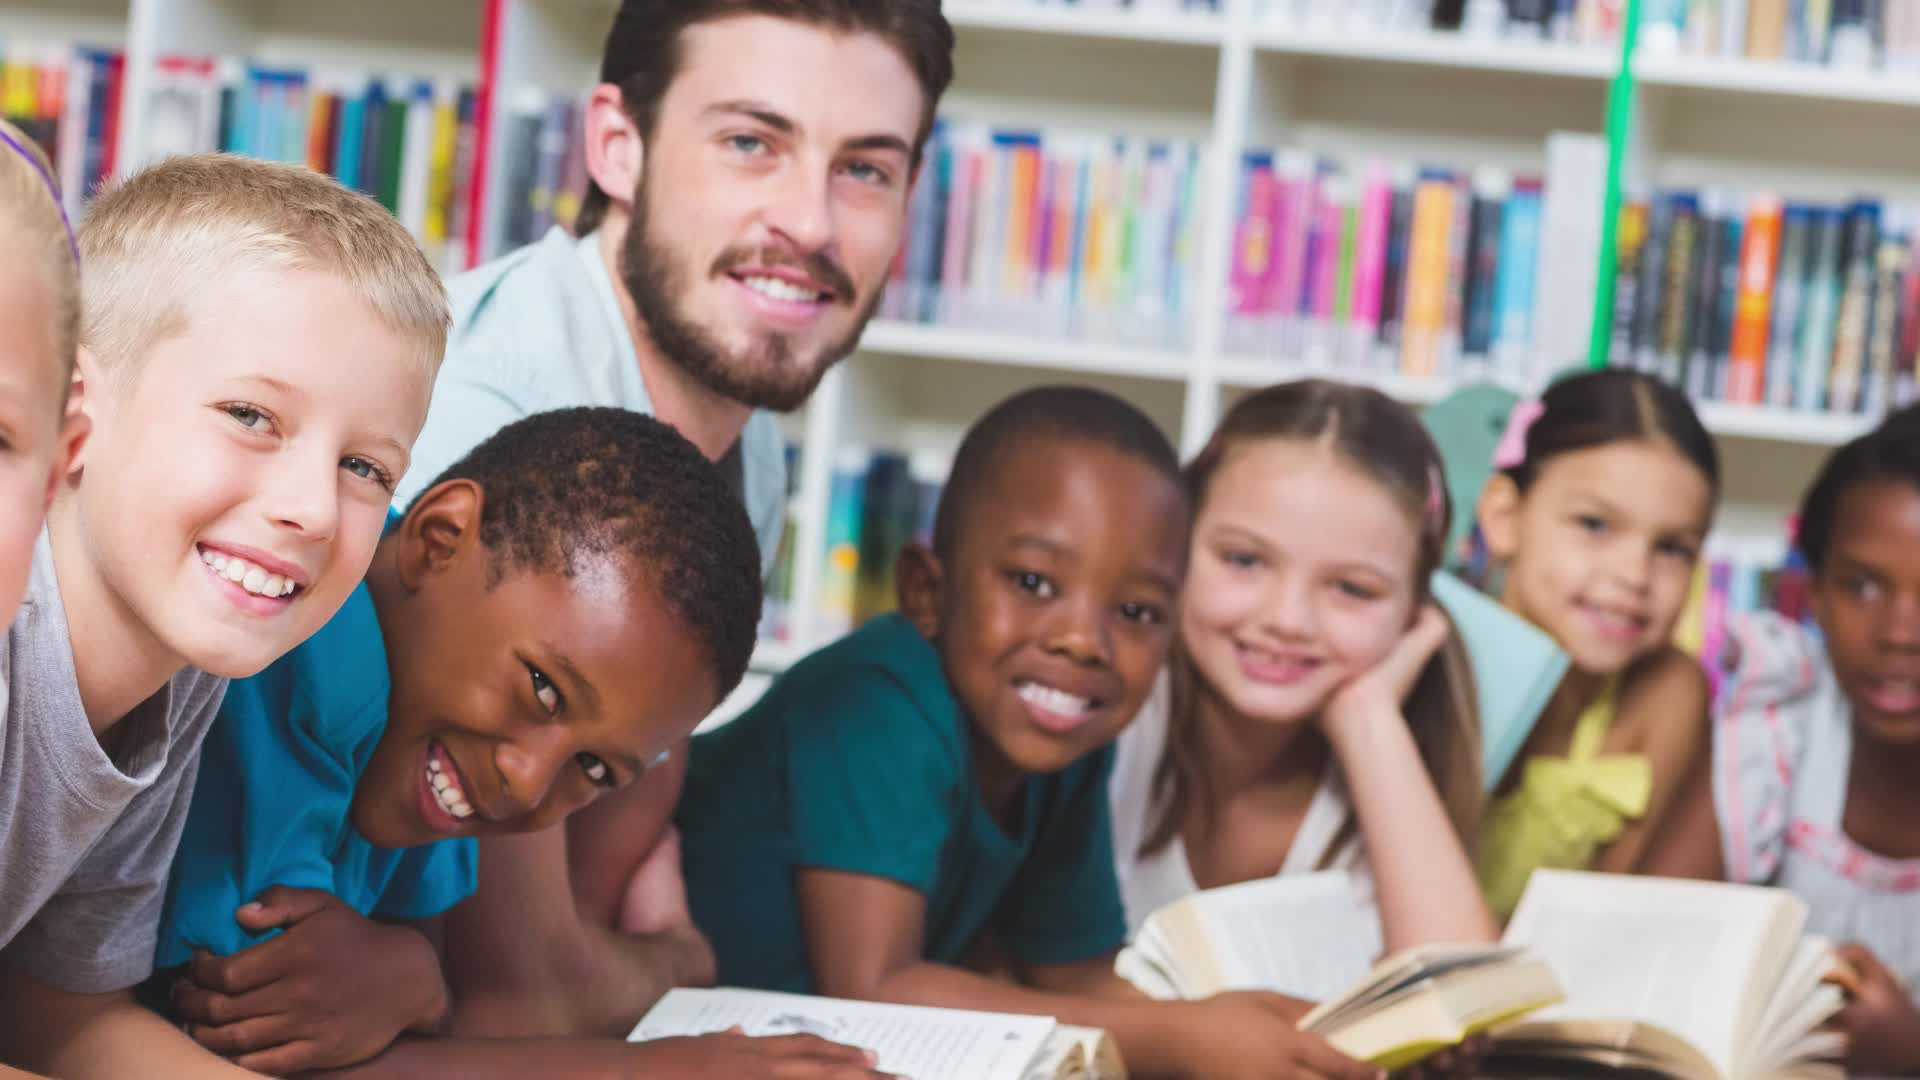 Inspirus Credit Union appreciates those who teach, inspire and make the world a better place to learn.